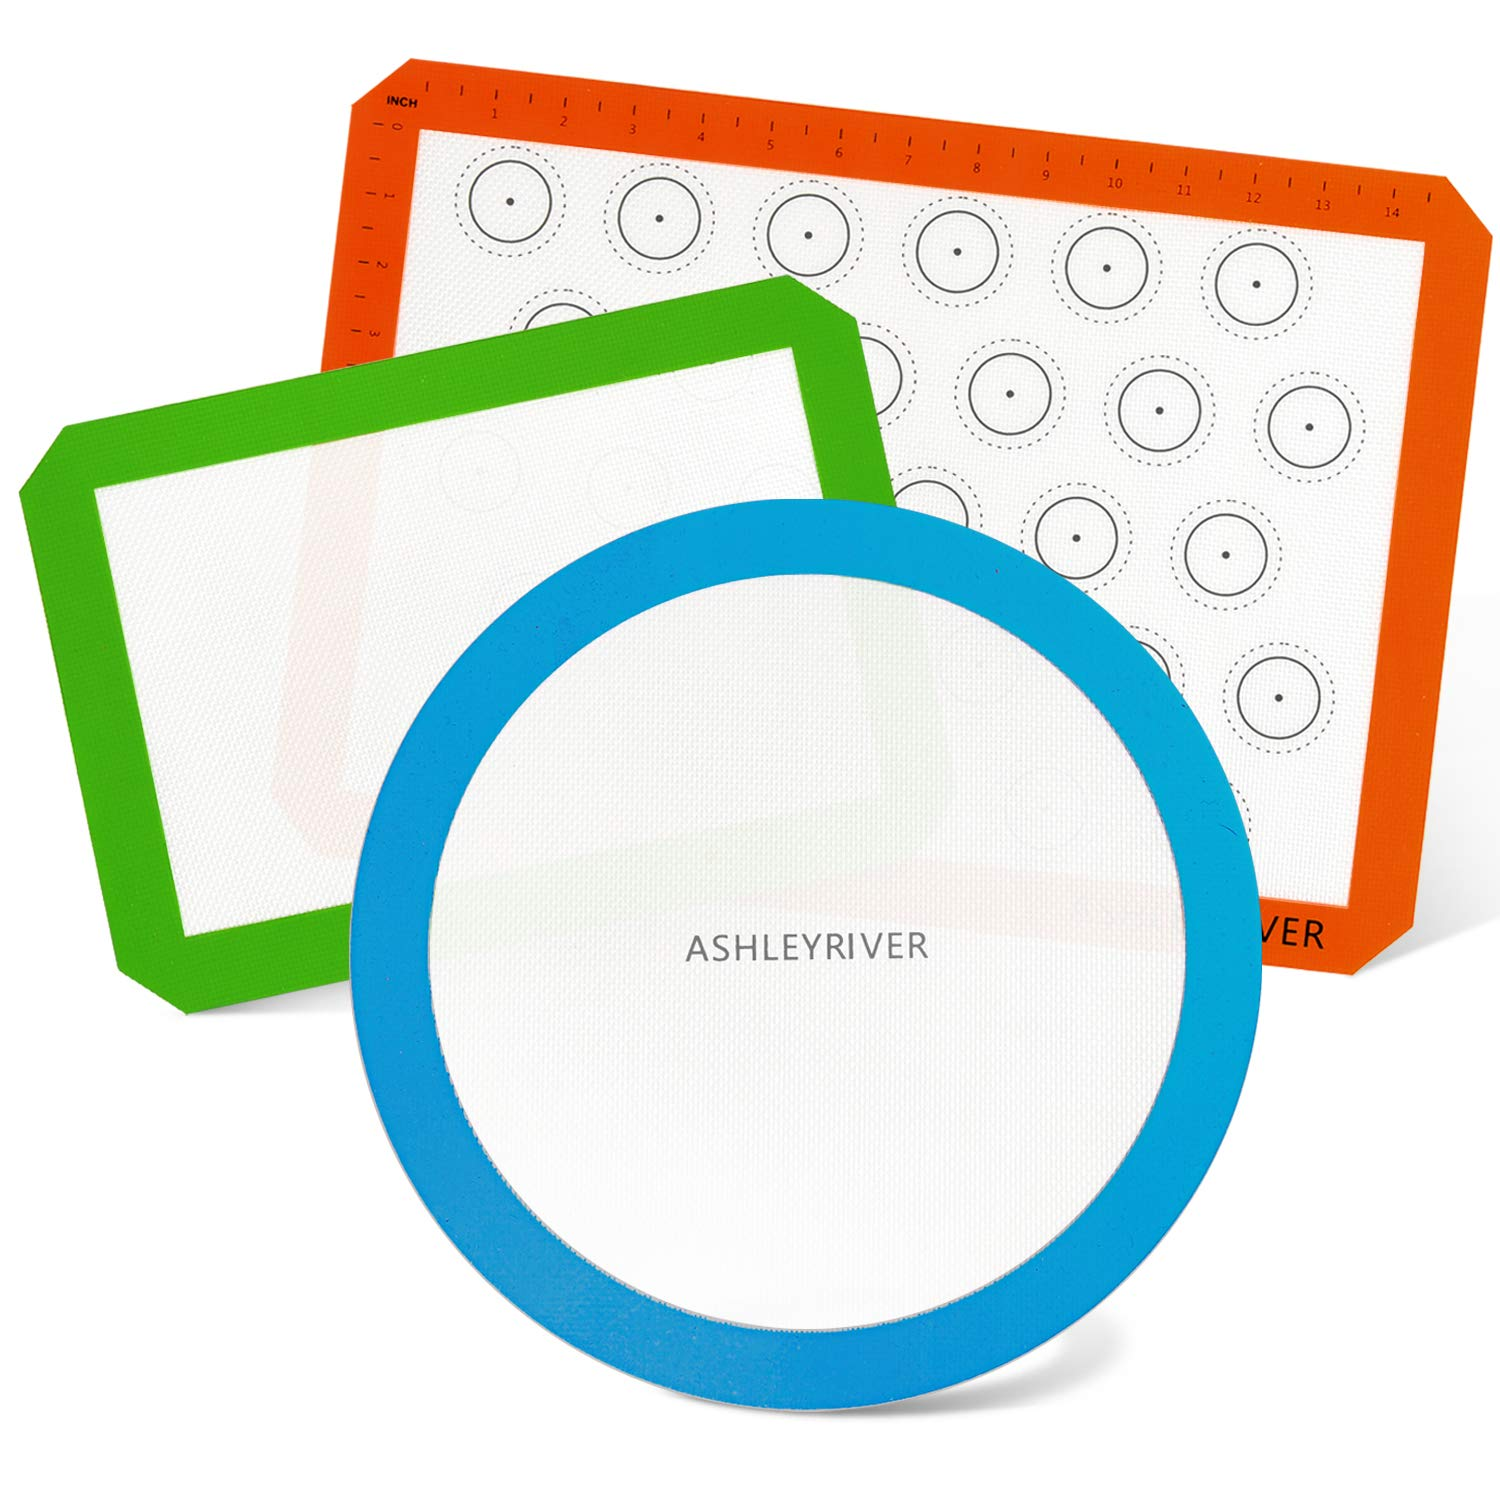 AshleyRiver Silicone Baking mats Liners 3 Pack Standard Half Size, Quarter & Round Sheets Reusable, Soft, Non-Stick, Non-Toxic for Bake Pans & Rolling - Macaroon/Pastry/Pie/Cookie/Pizza Making